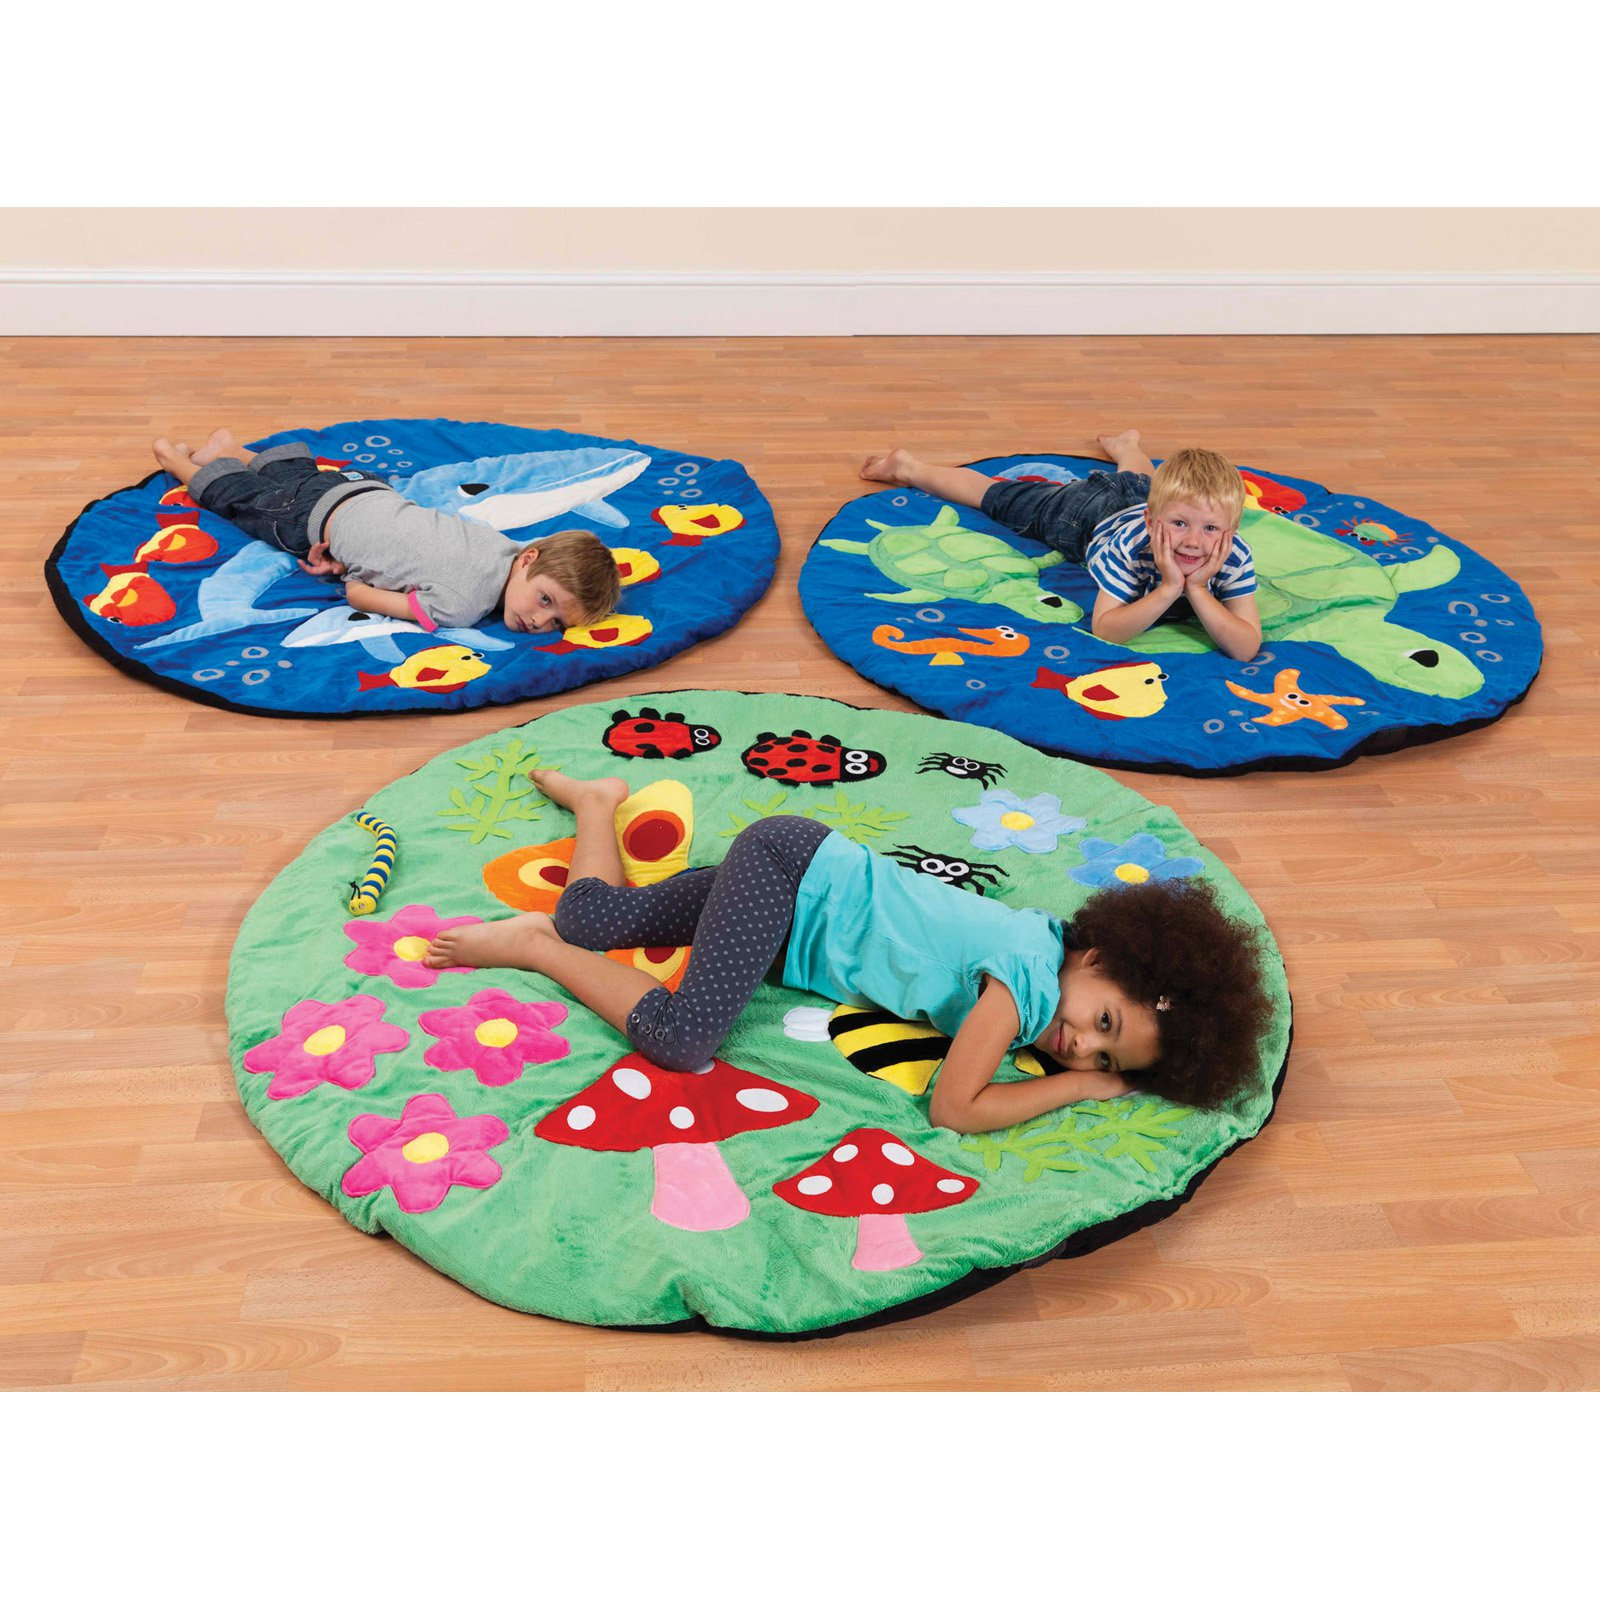 Kalokids Back to Nature Meadow Giant Snuggle Mat